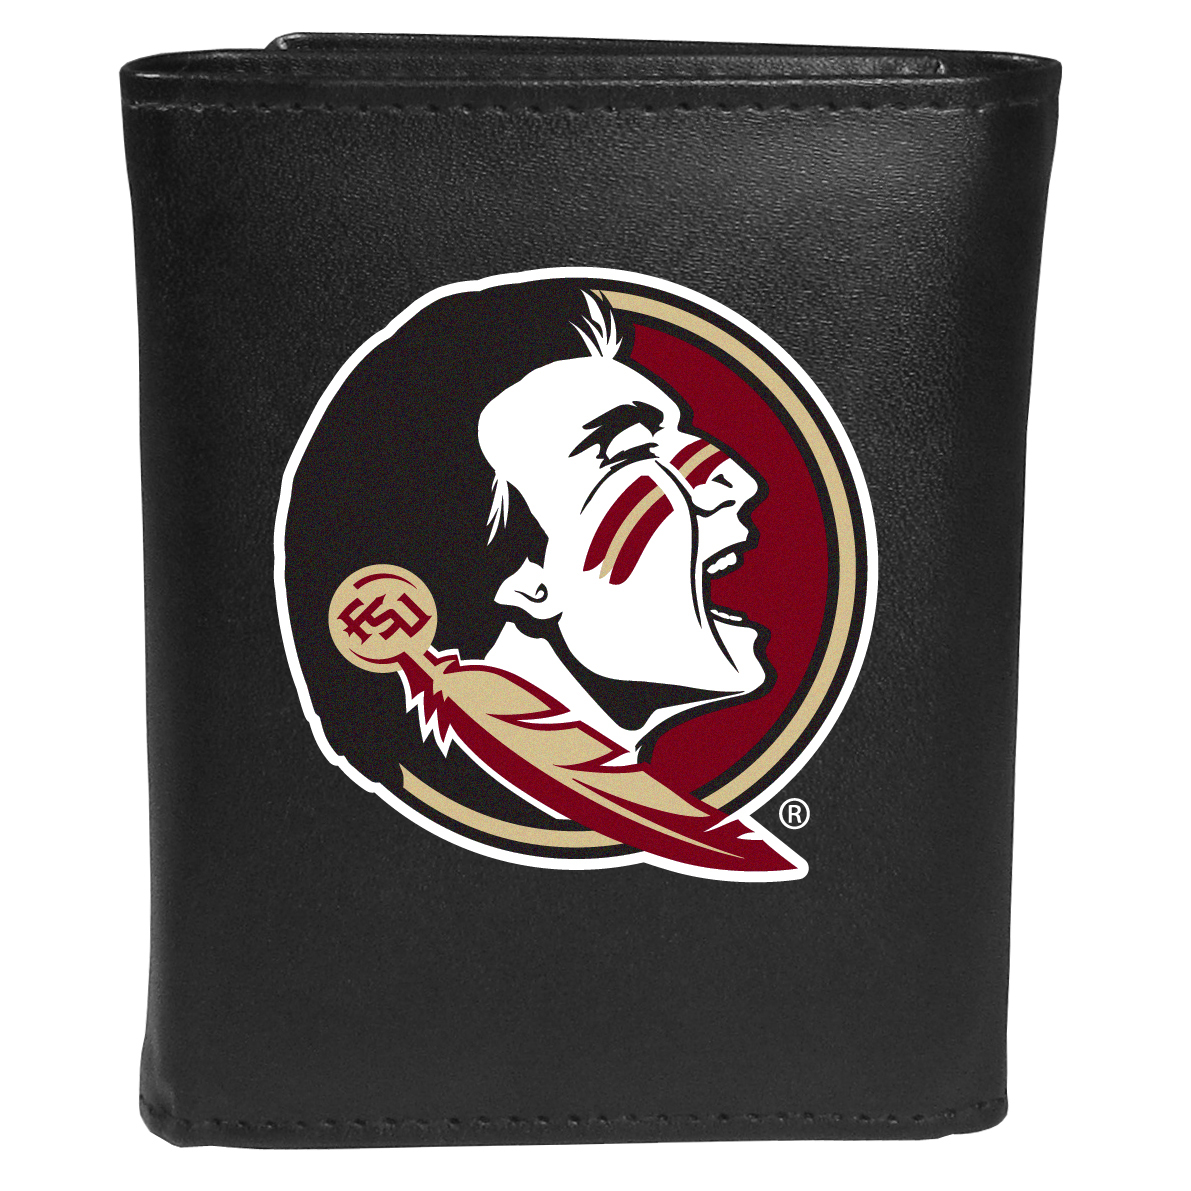 Florida St. Seminoles Tri-fold Wallet Large Logo - Sports fans do not have to sacrifice style with this classic tri-fold wallet that sports theFlorida St. Seminoles?extra large logo. This men's fashion accessory has a leather grain look and expert craftmanship for a quality wallet at a great price. The wallet features inner credit card slots, windowed ID slot and a large billfold pocket. The front of the wallet features an extra large printed team logo.